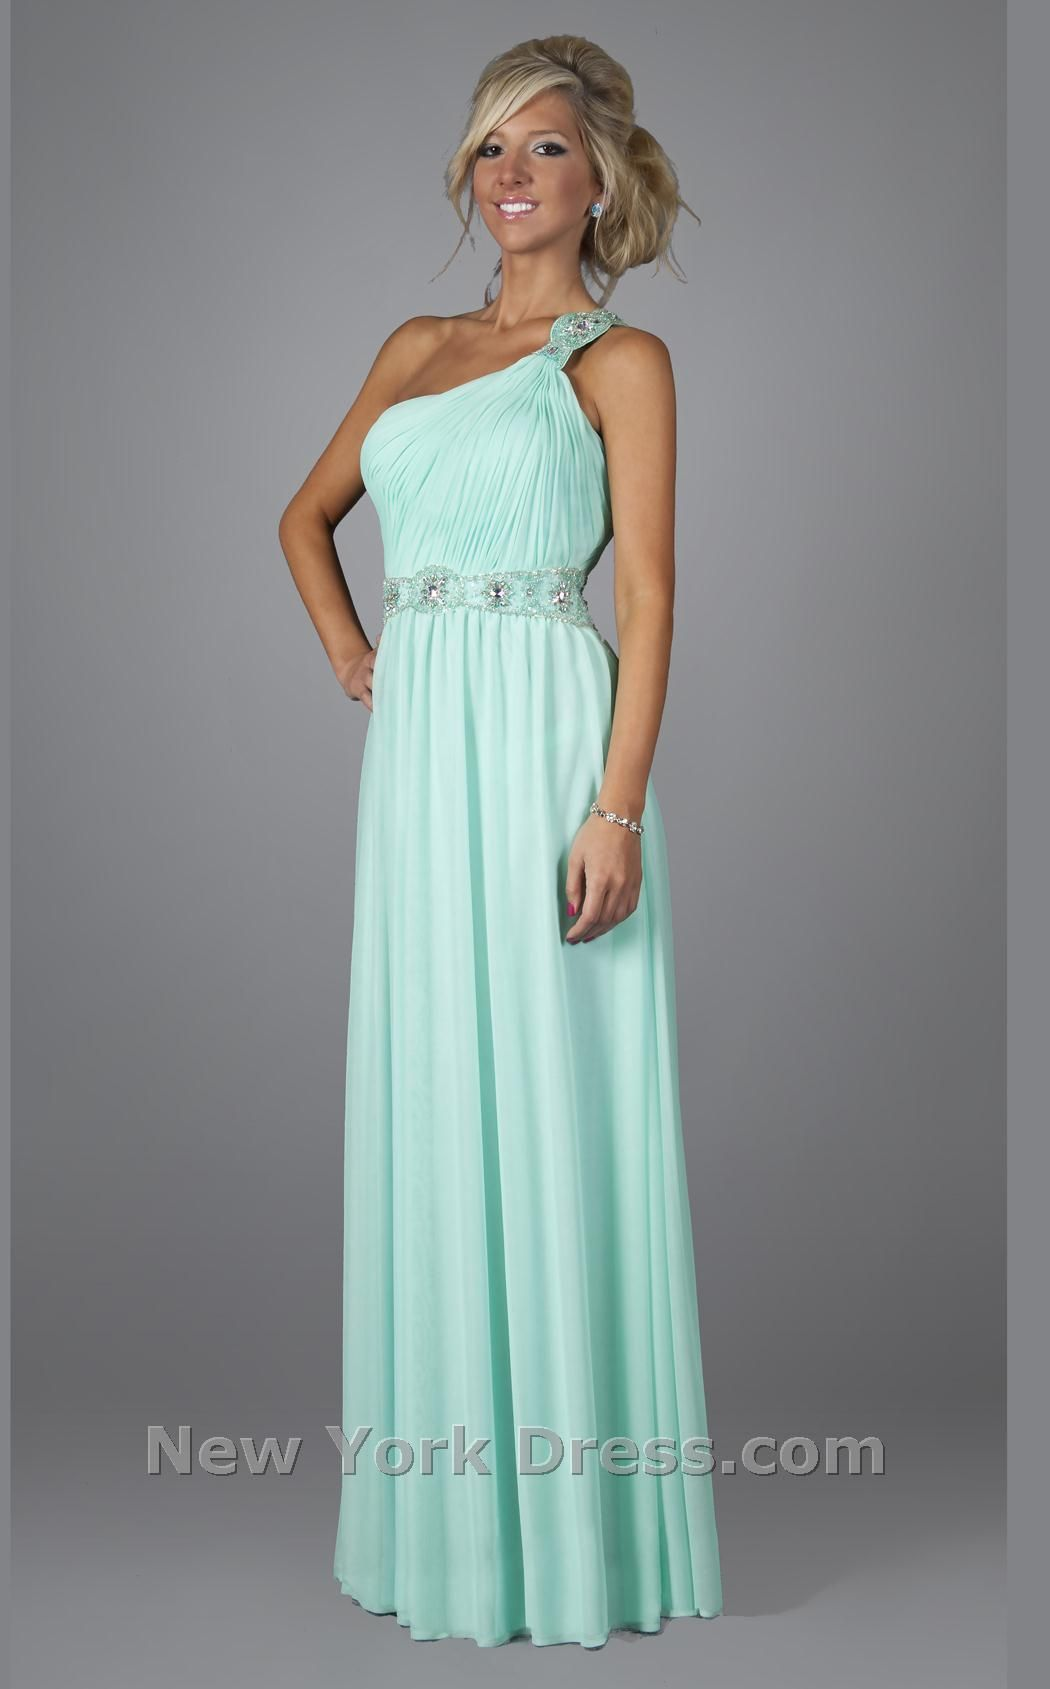 Supposed to be bridesmaid dress but i really really want a greek